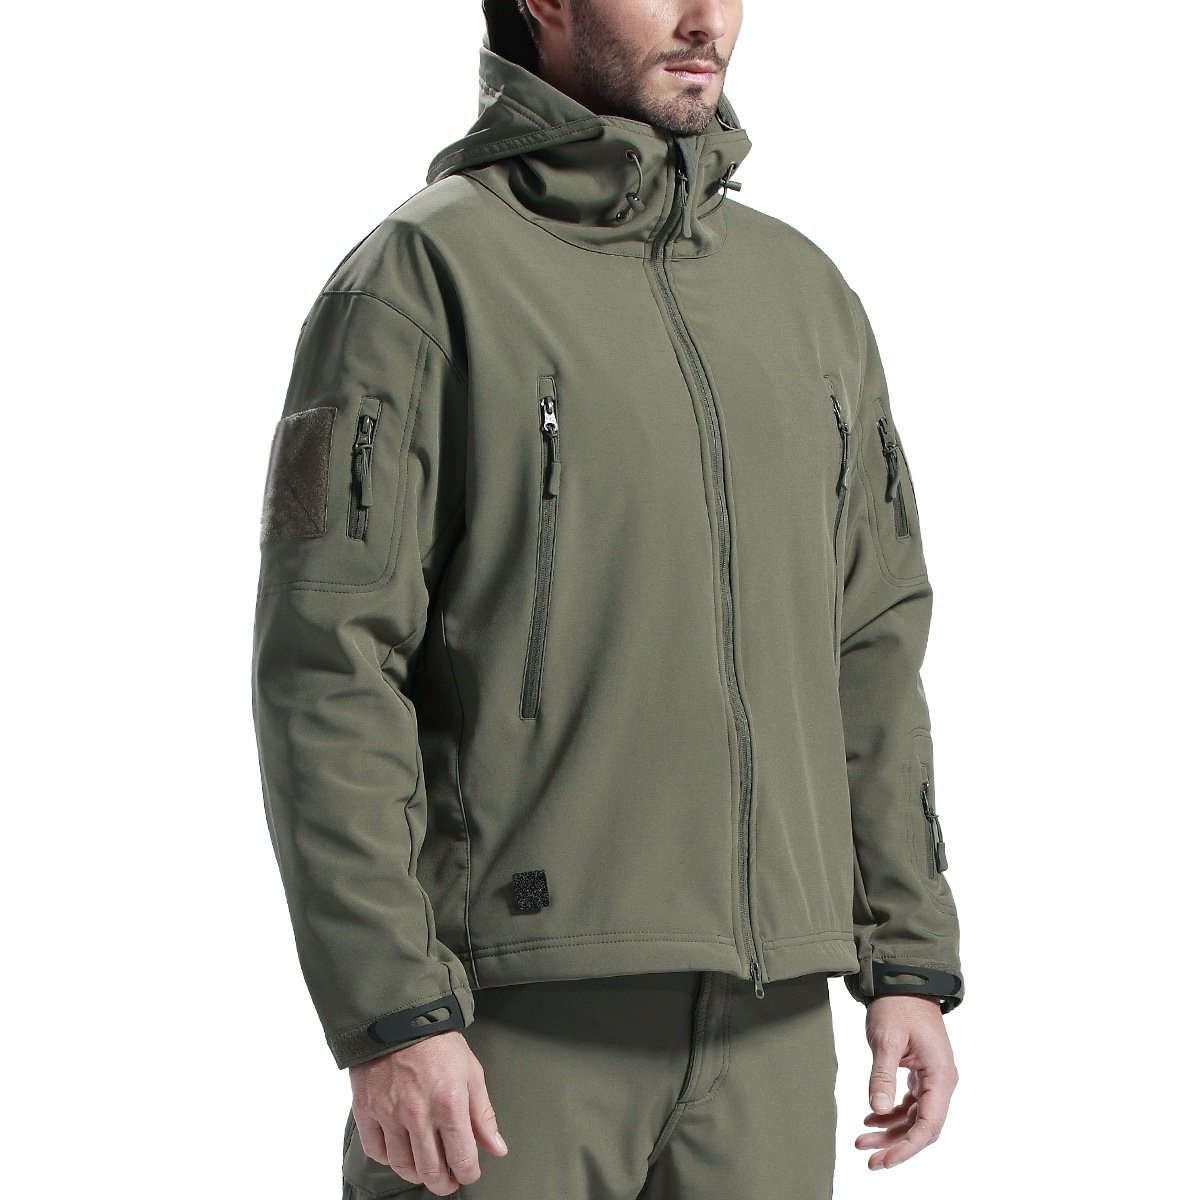 FREE SOLDIER Men's Outdoor Waterproof Soft Shell Hooded Military Tactical Jacket(Army Green L)